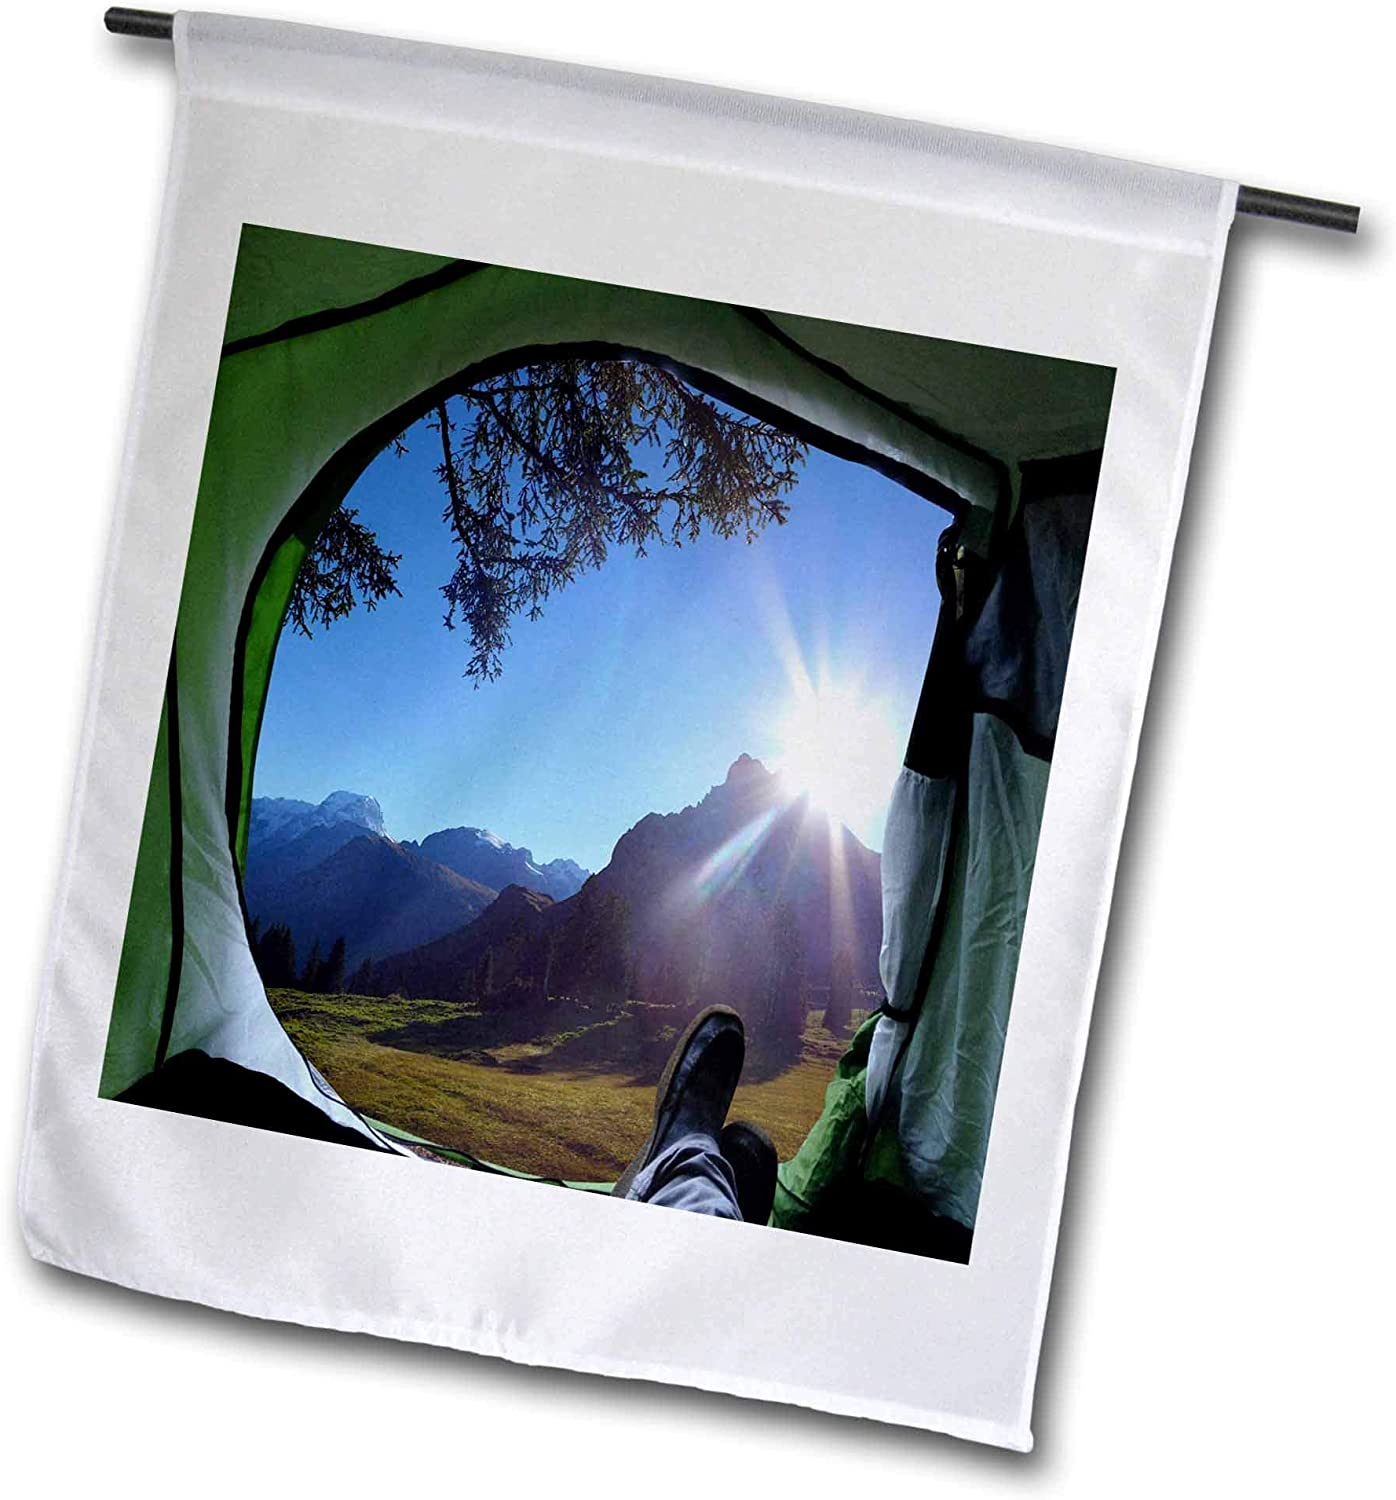 3dRose 2 Travel – Camping, Hiking, Biking Activities - Mountain View from The Tent Camping Vacation - 12 x 18 inch Garden Flag (fl_311404_1)